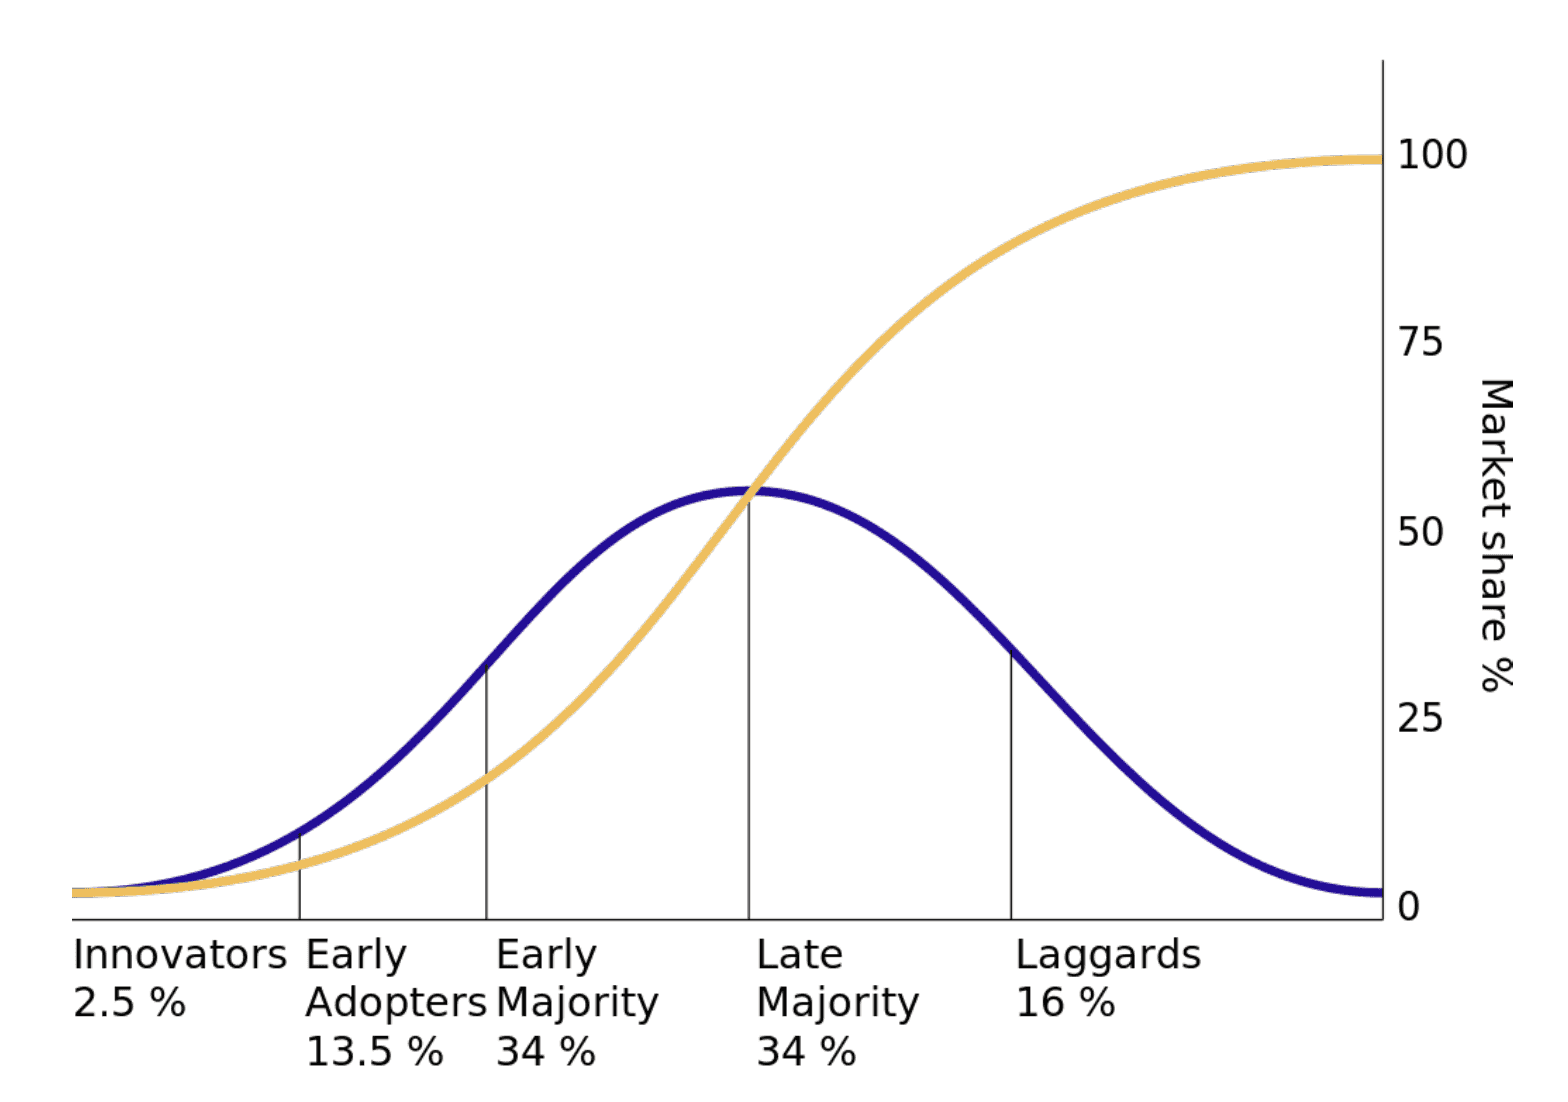 Early adopters mage: Consumers adopting new technology (blue) against market share of that technology (yellow).